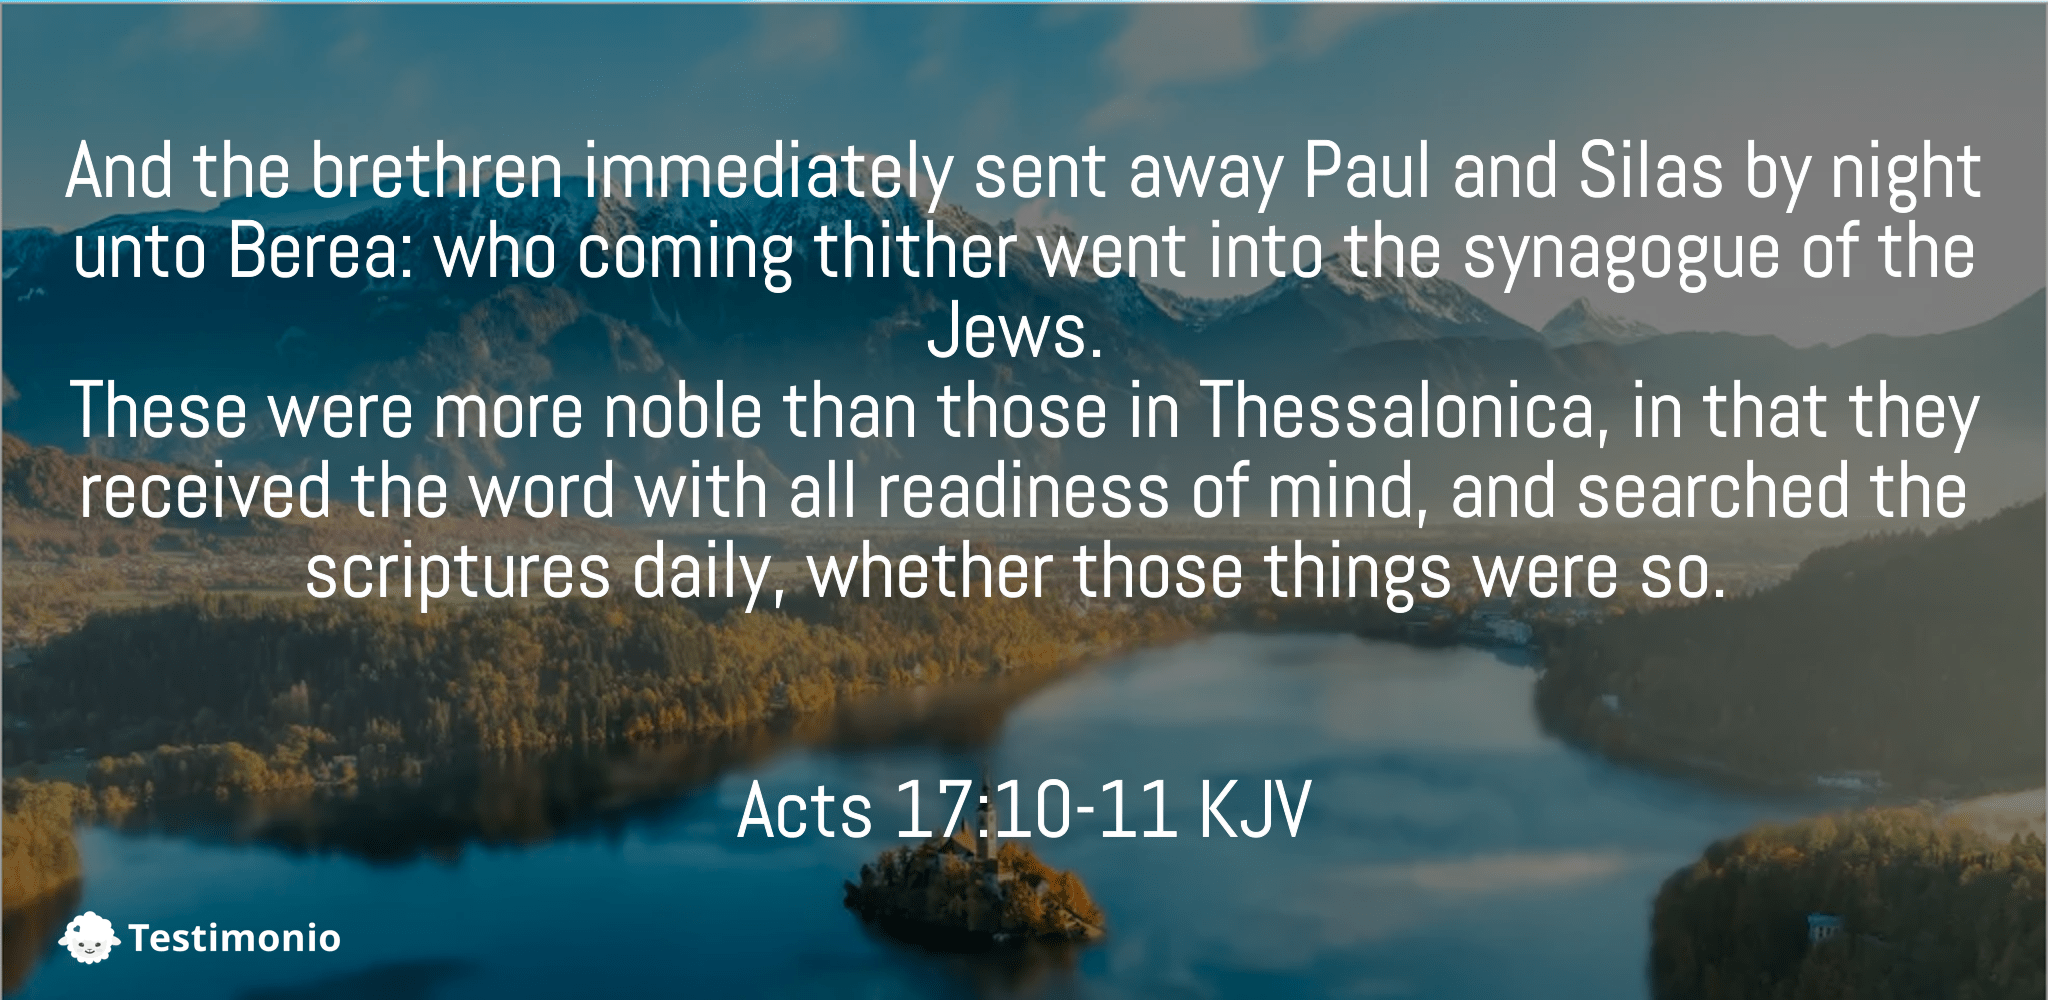 Acts 17:10-11